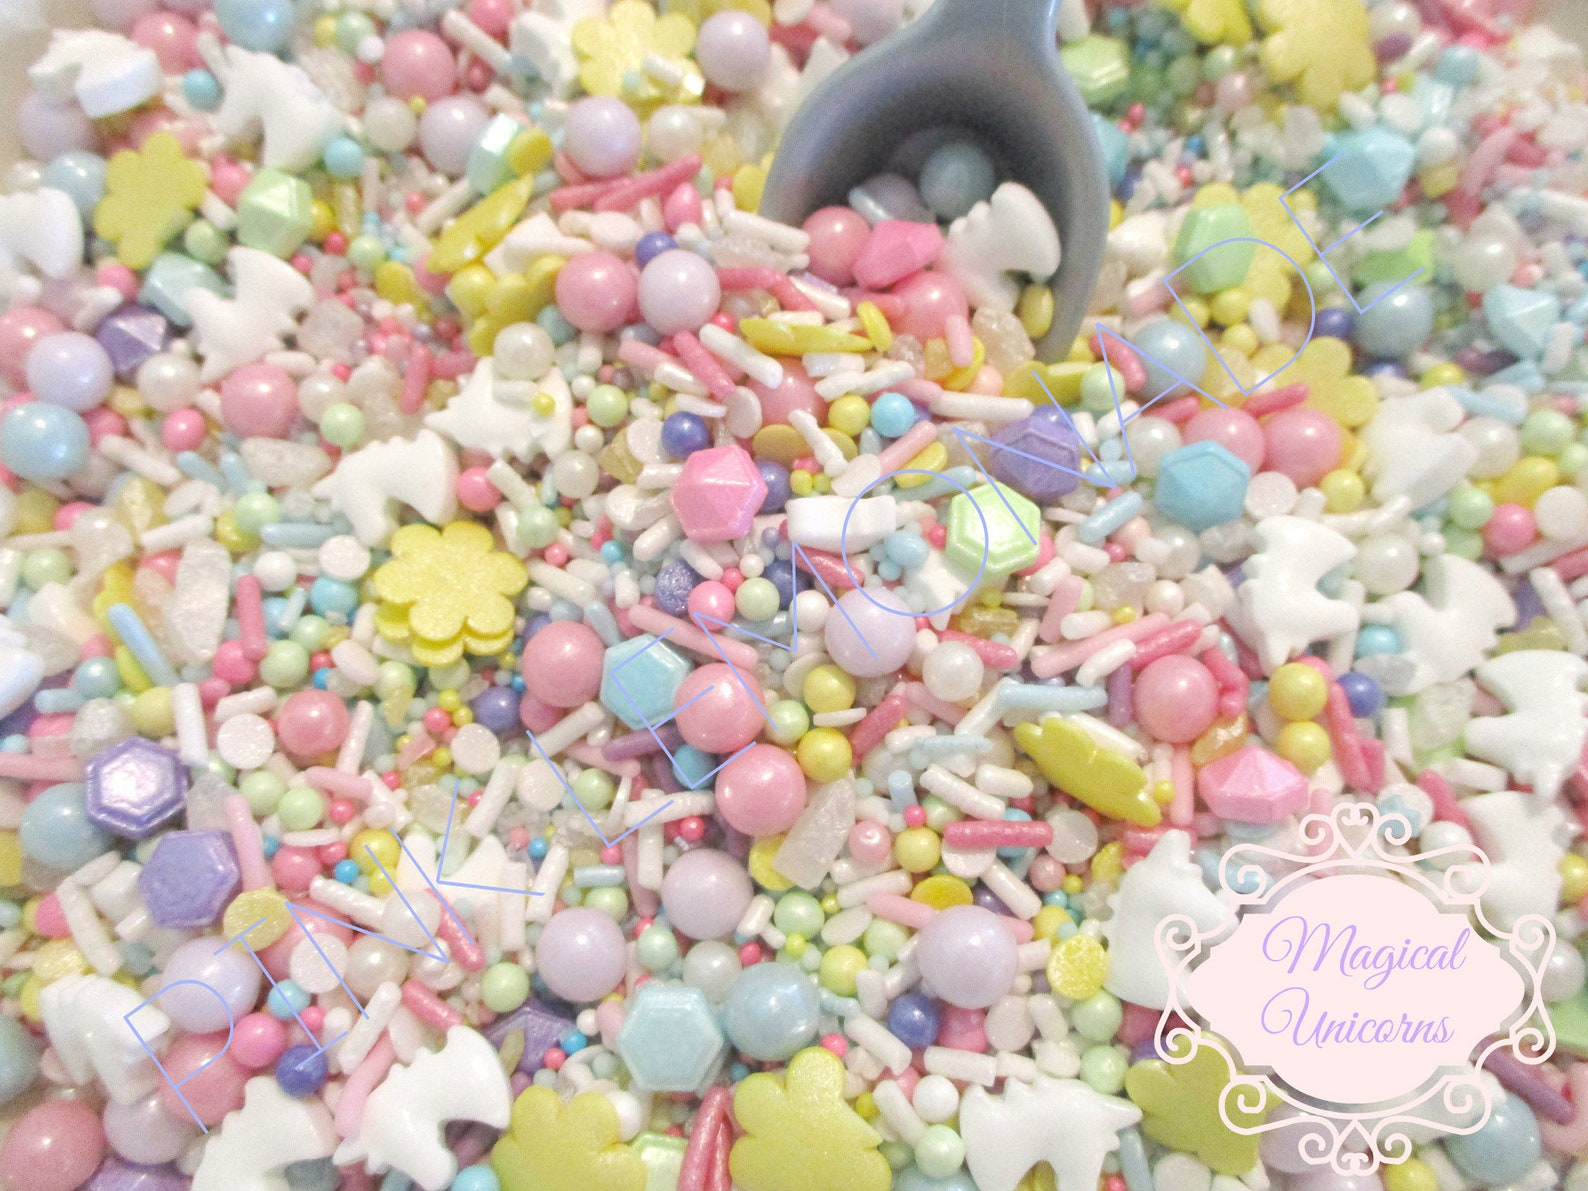 for your Cupcakes and Cake Pops Sprinkles 6 oz Strawberries Fiesta Rainbow Jimmies Mix Chocolate Dipped Pretzels Cookies